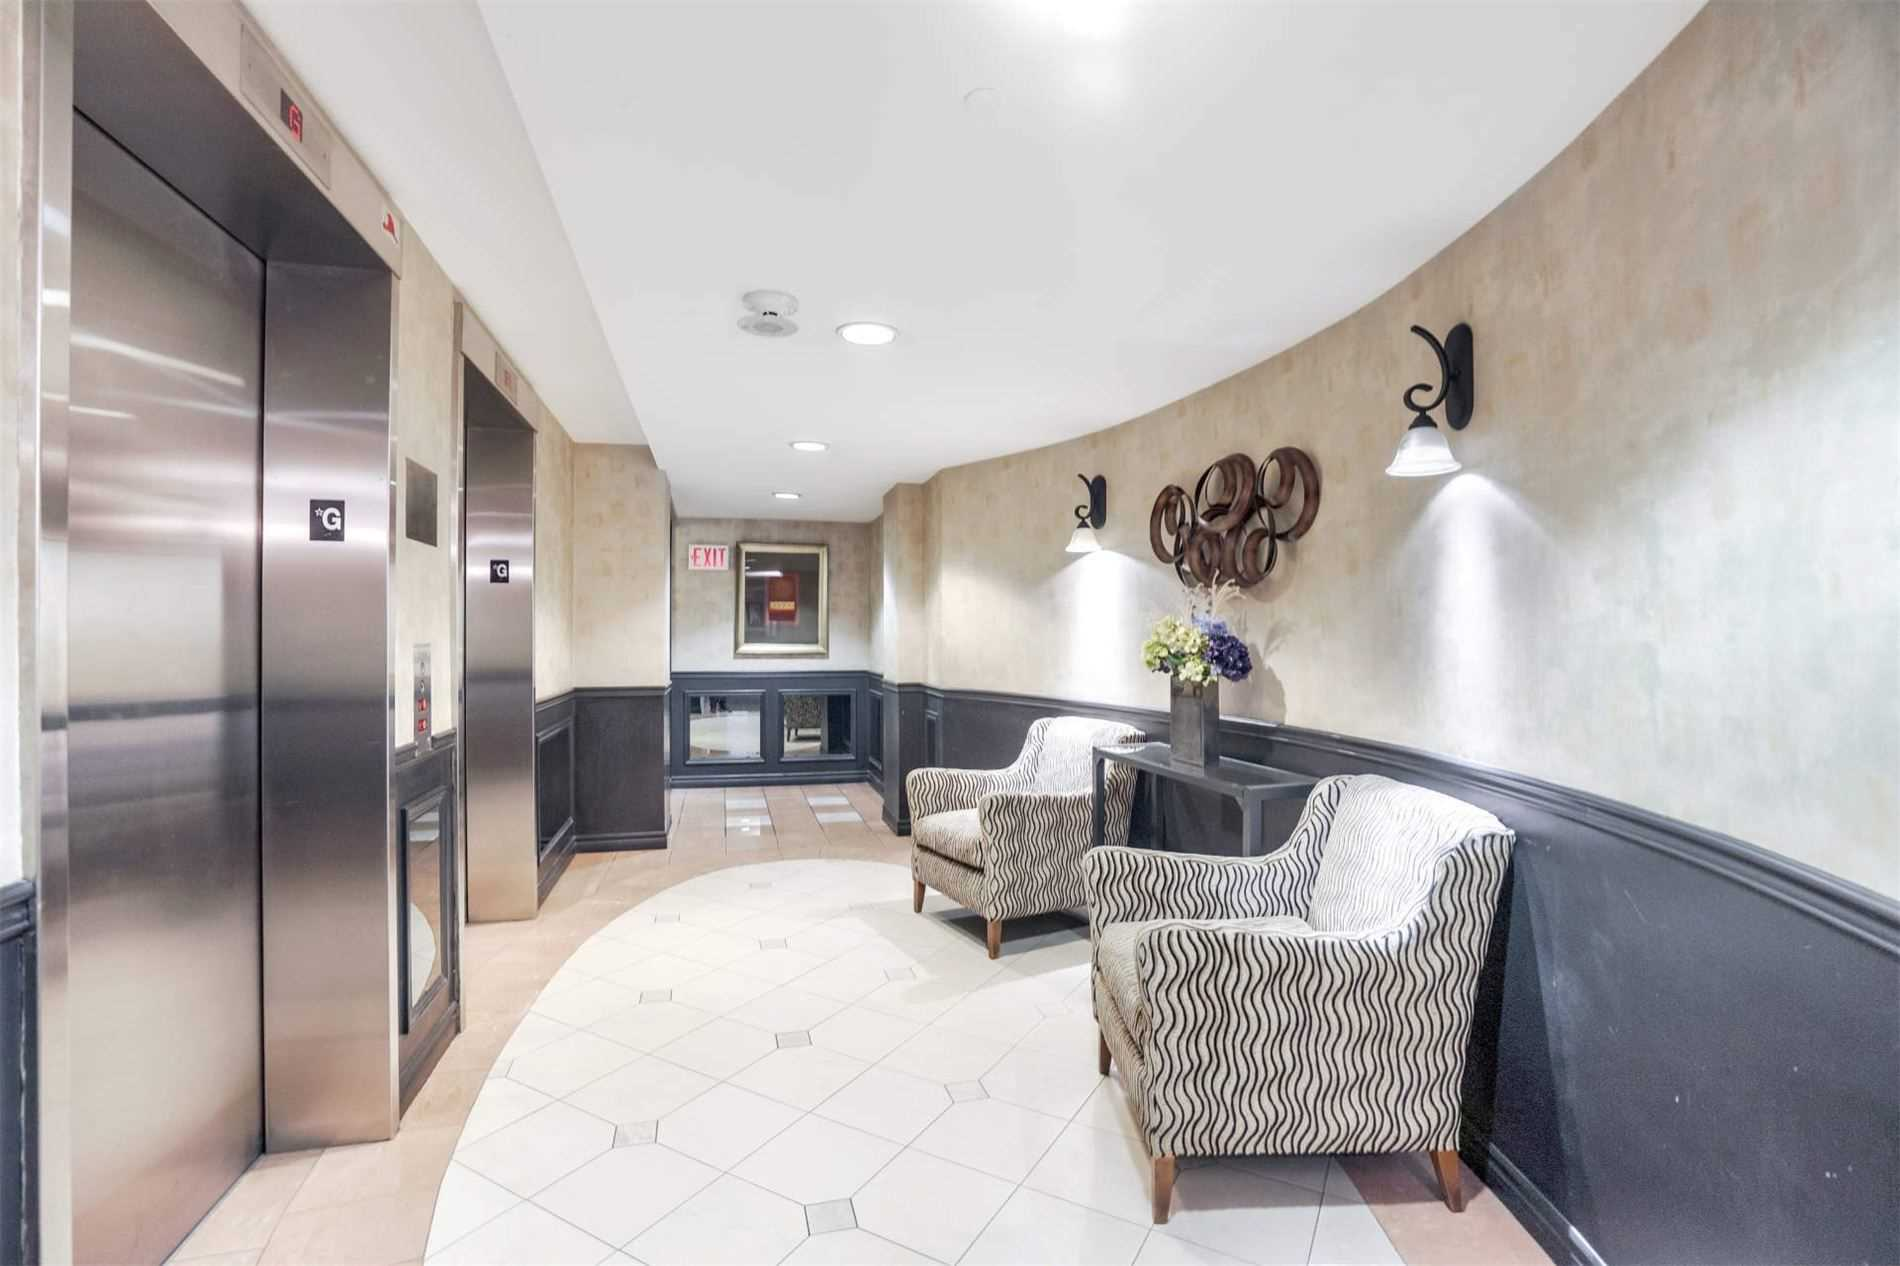 For Sale: 709 710 - 39 Jarvis Street, Toronto, ON | 2 Bed, 3 Bath Condo for $2349900.00. See 20 photos!